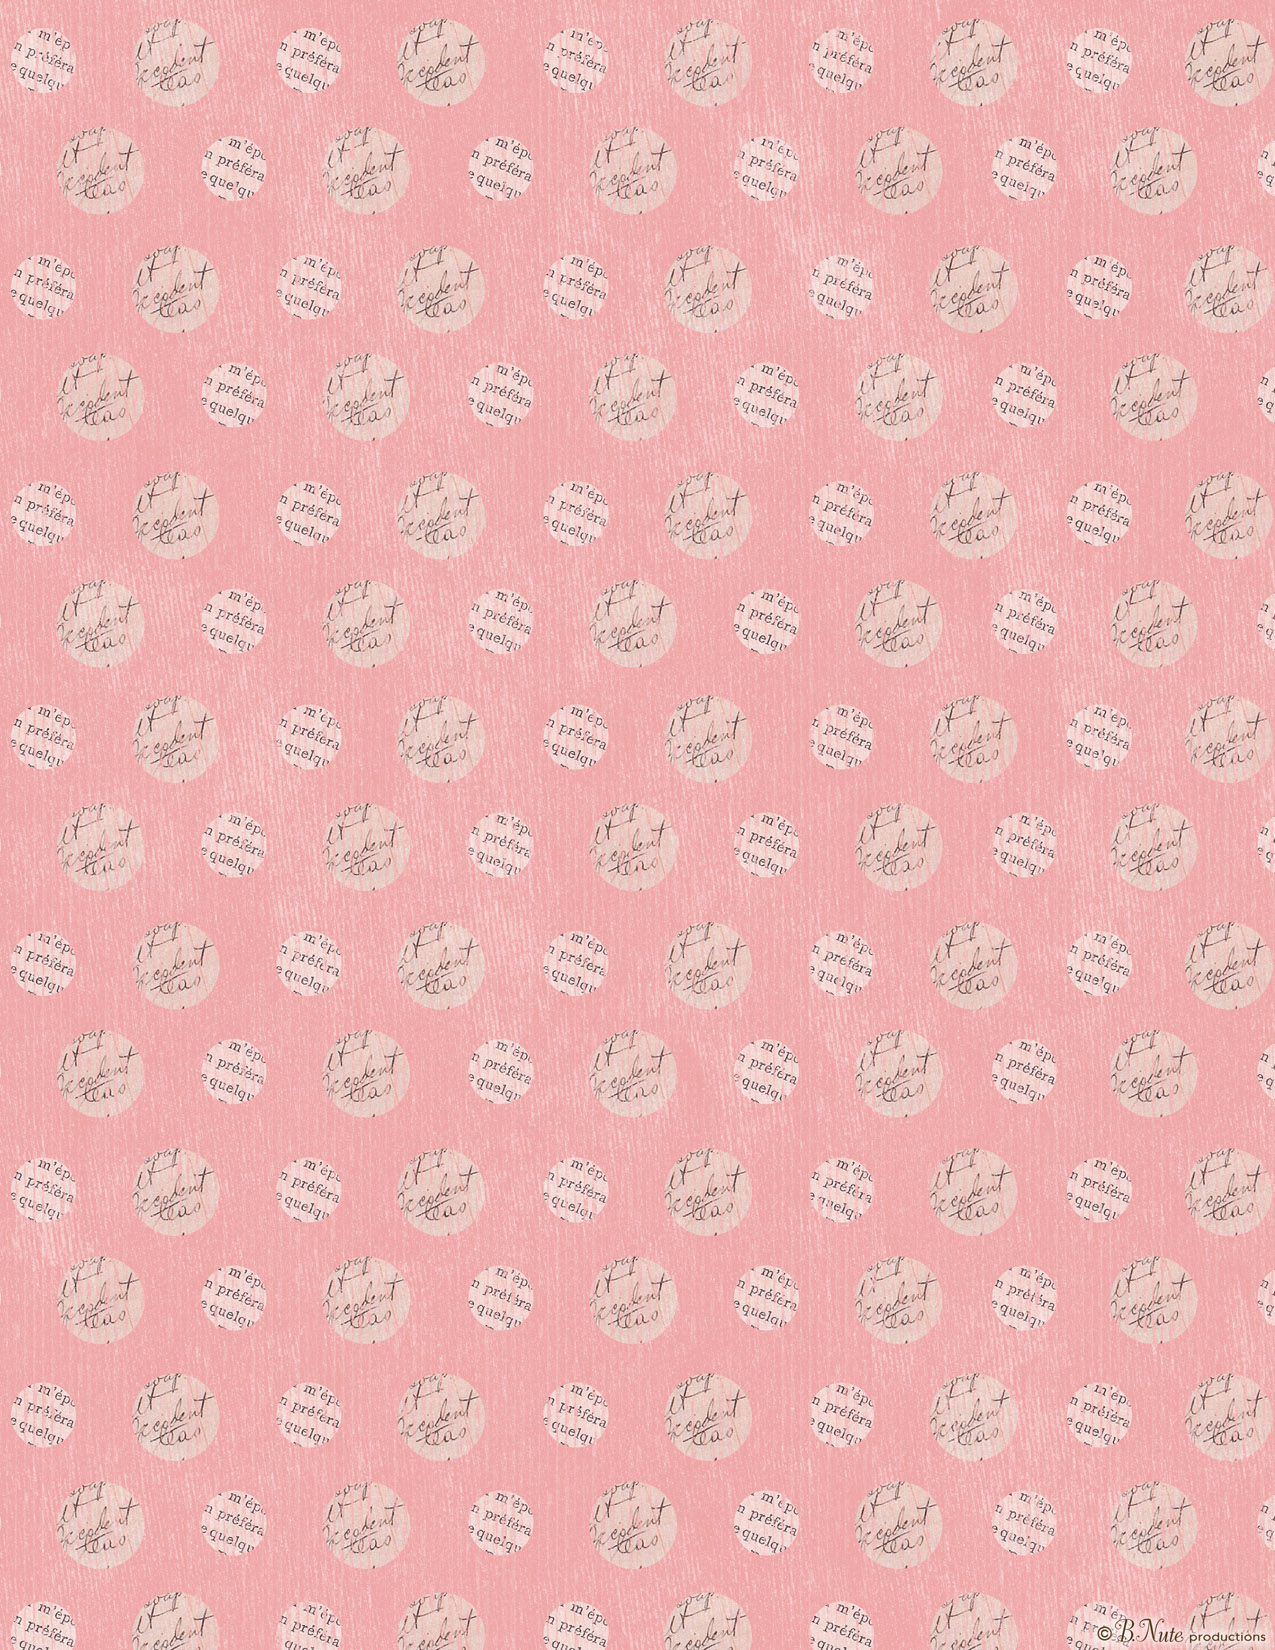 6 Images of Valentine Free Printable Paper Patterns